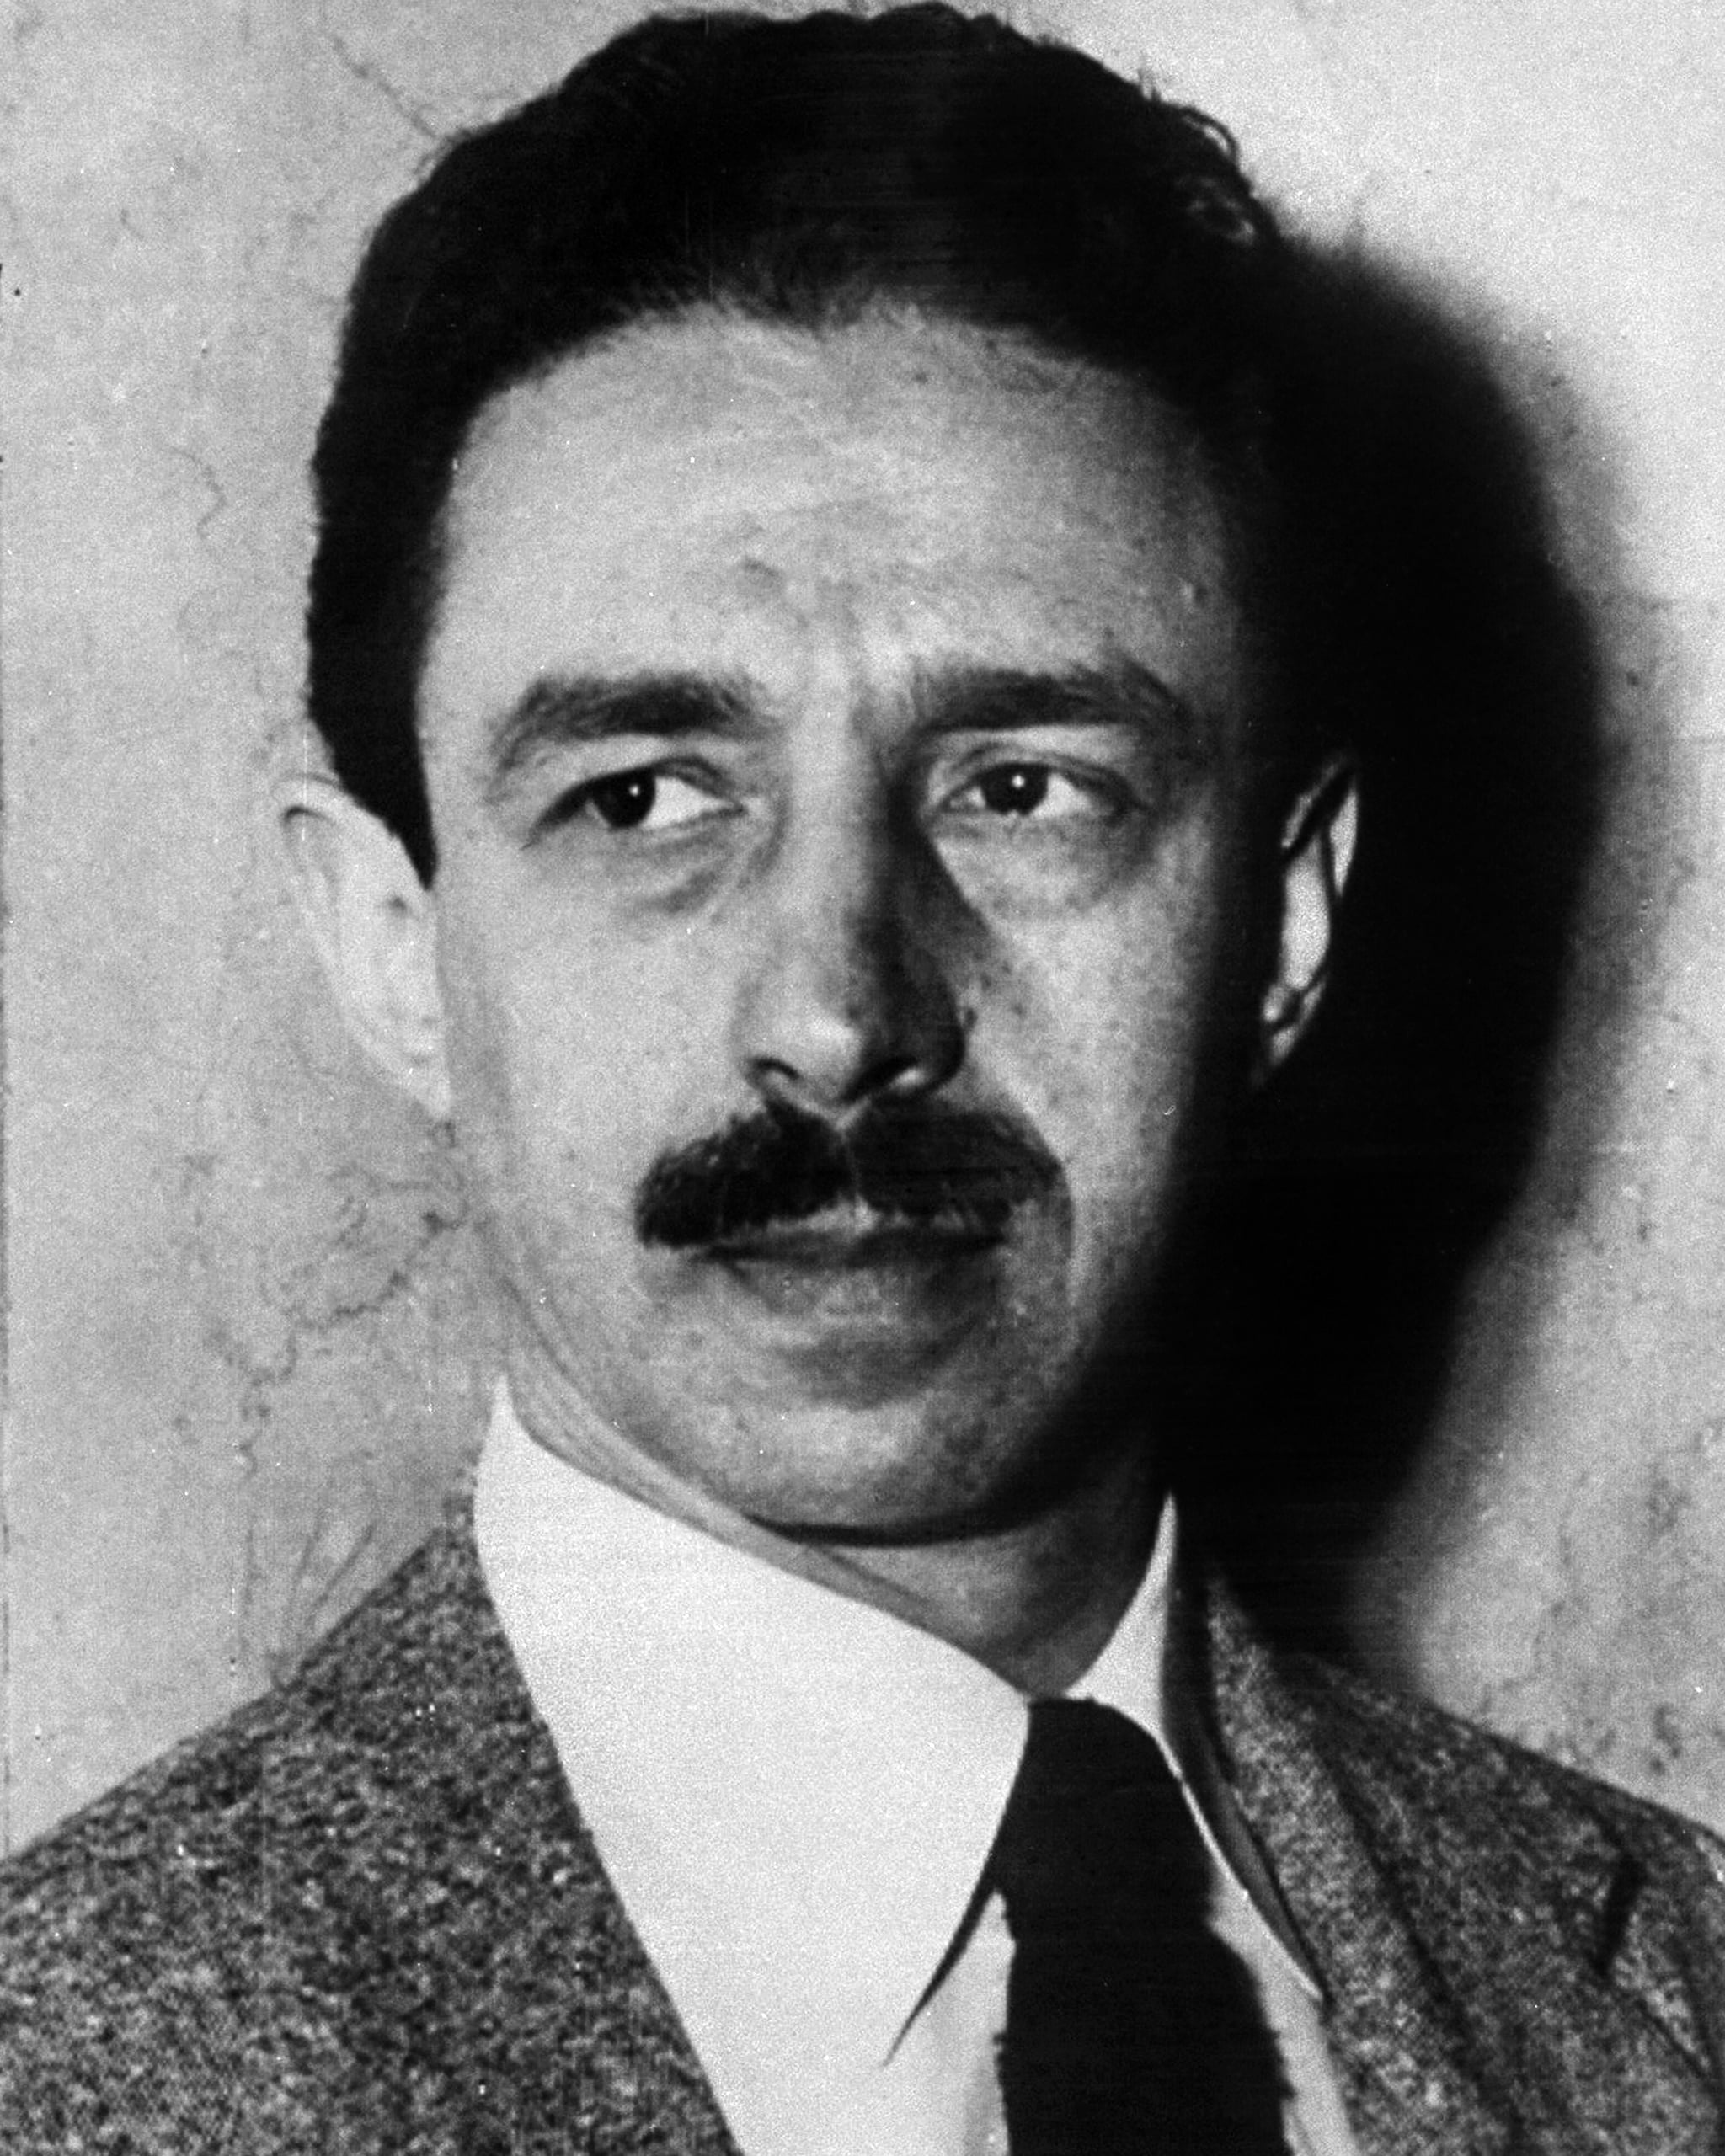 Dr. George Hill Hodel. 38, party involved in alleged incest case and Black Dahlia story. (Photo By: NY Daily News via Getty Images)